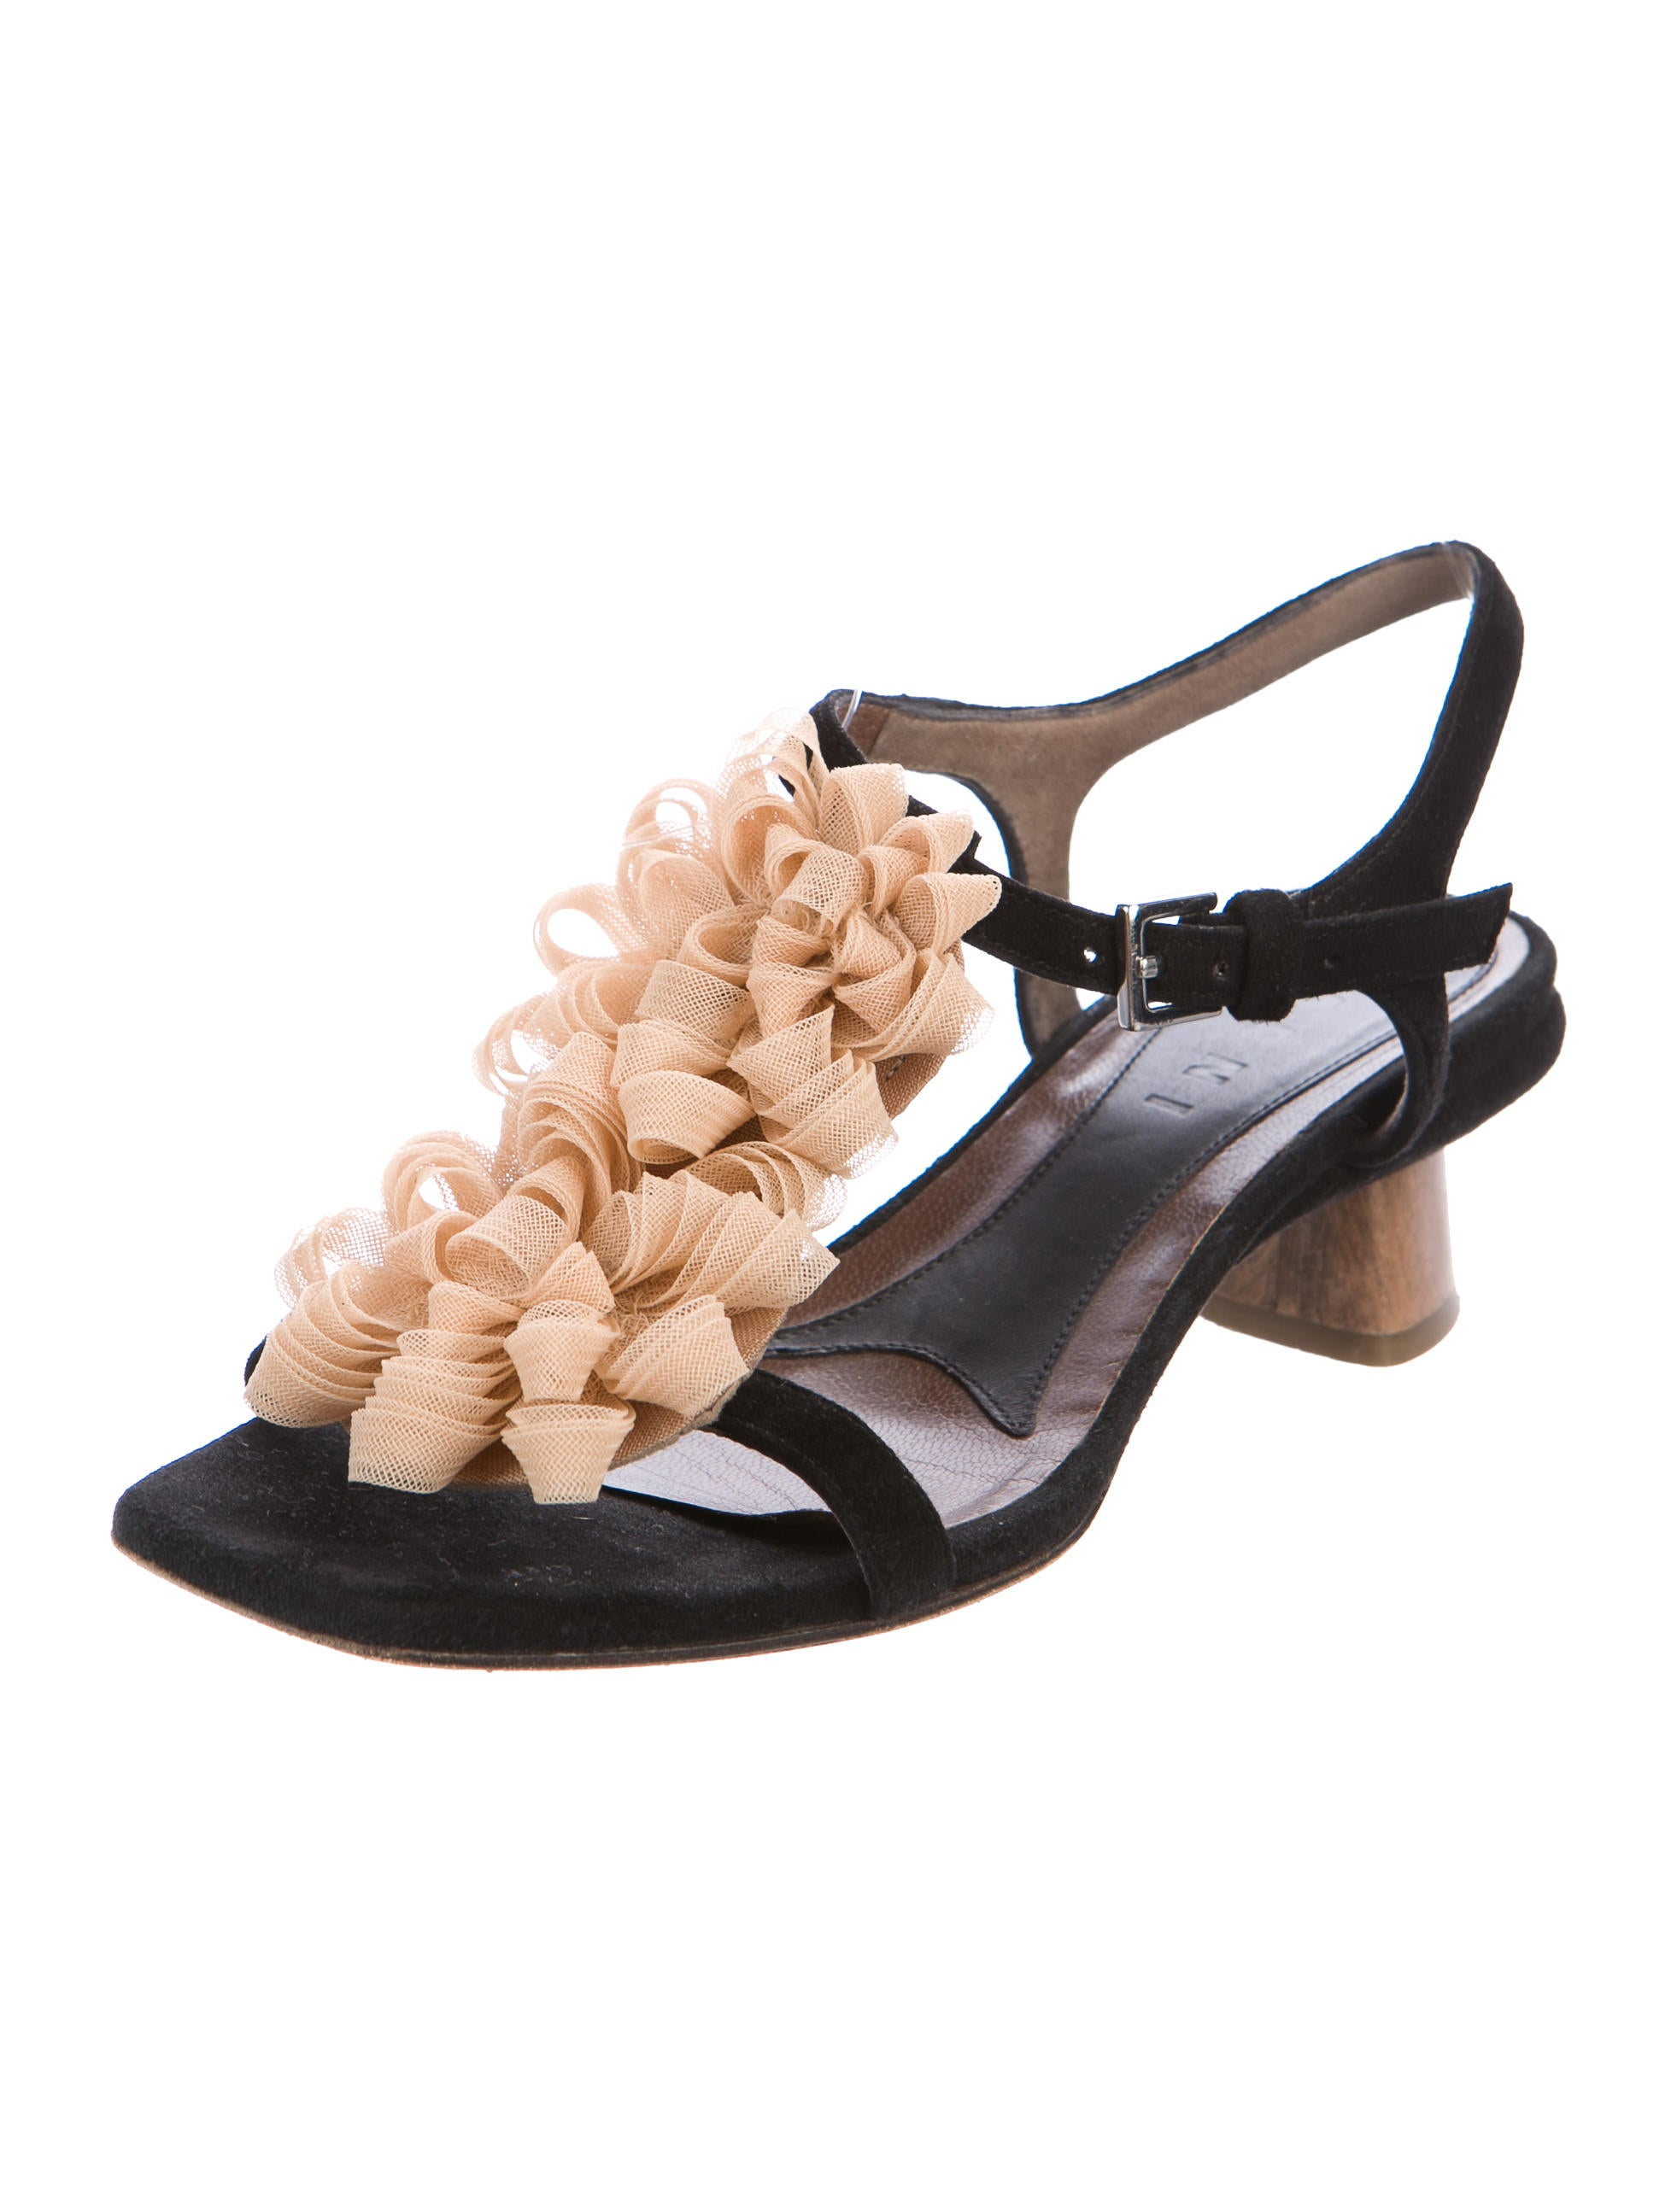 Marni Ruffle-Accented Suede Sandals 2014 new cheap online discount pick a best sb0PZLULCl